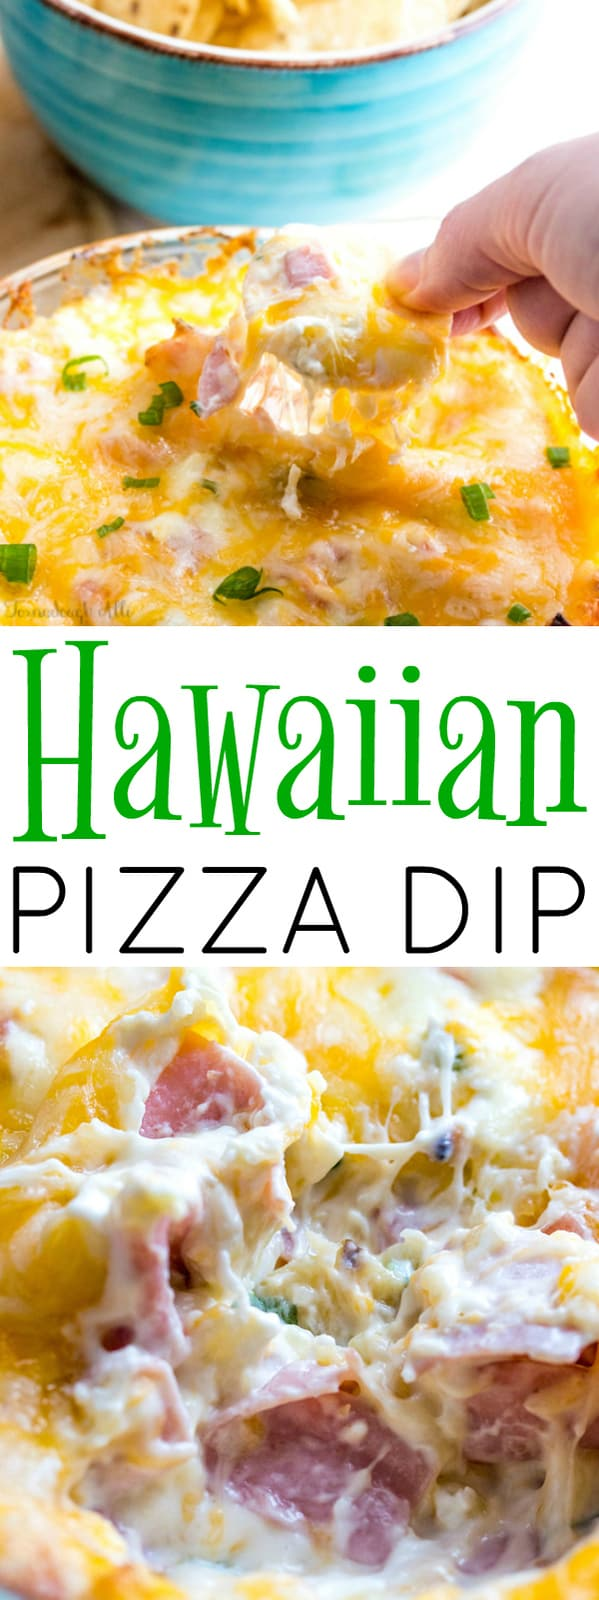 Hawaiian Pizza Dip